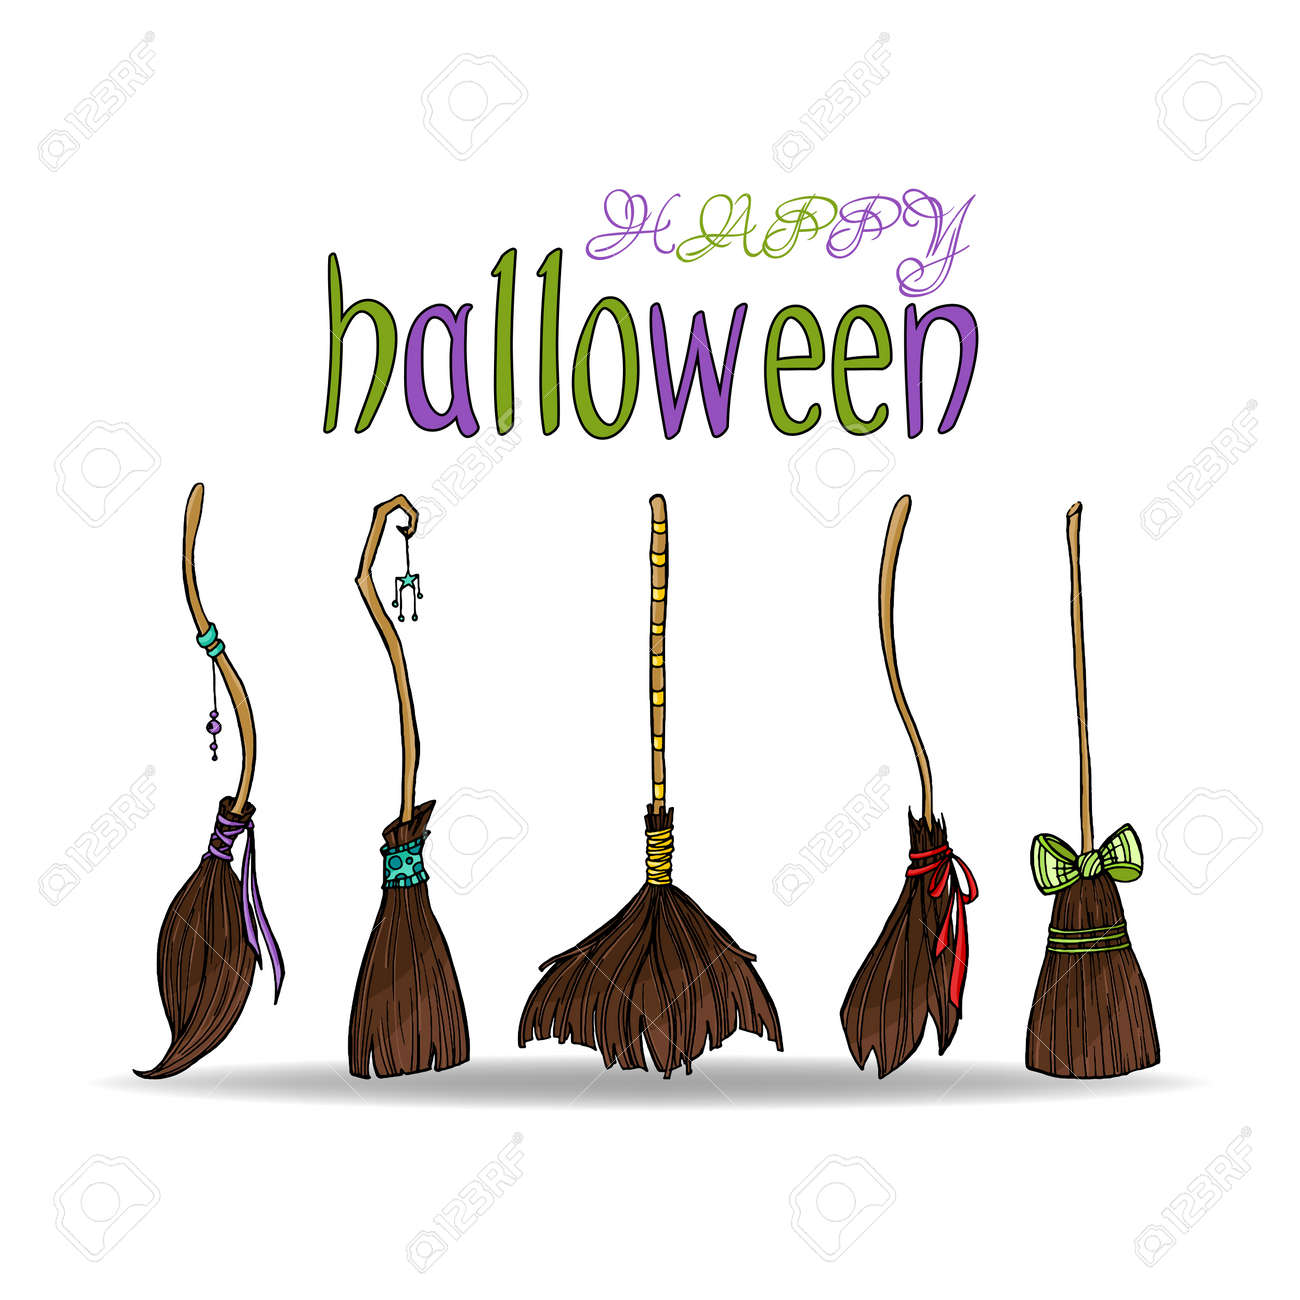 Happy Halloween Card With Different Cute Witch Brooms. Stock Vector    79965762